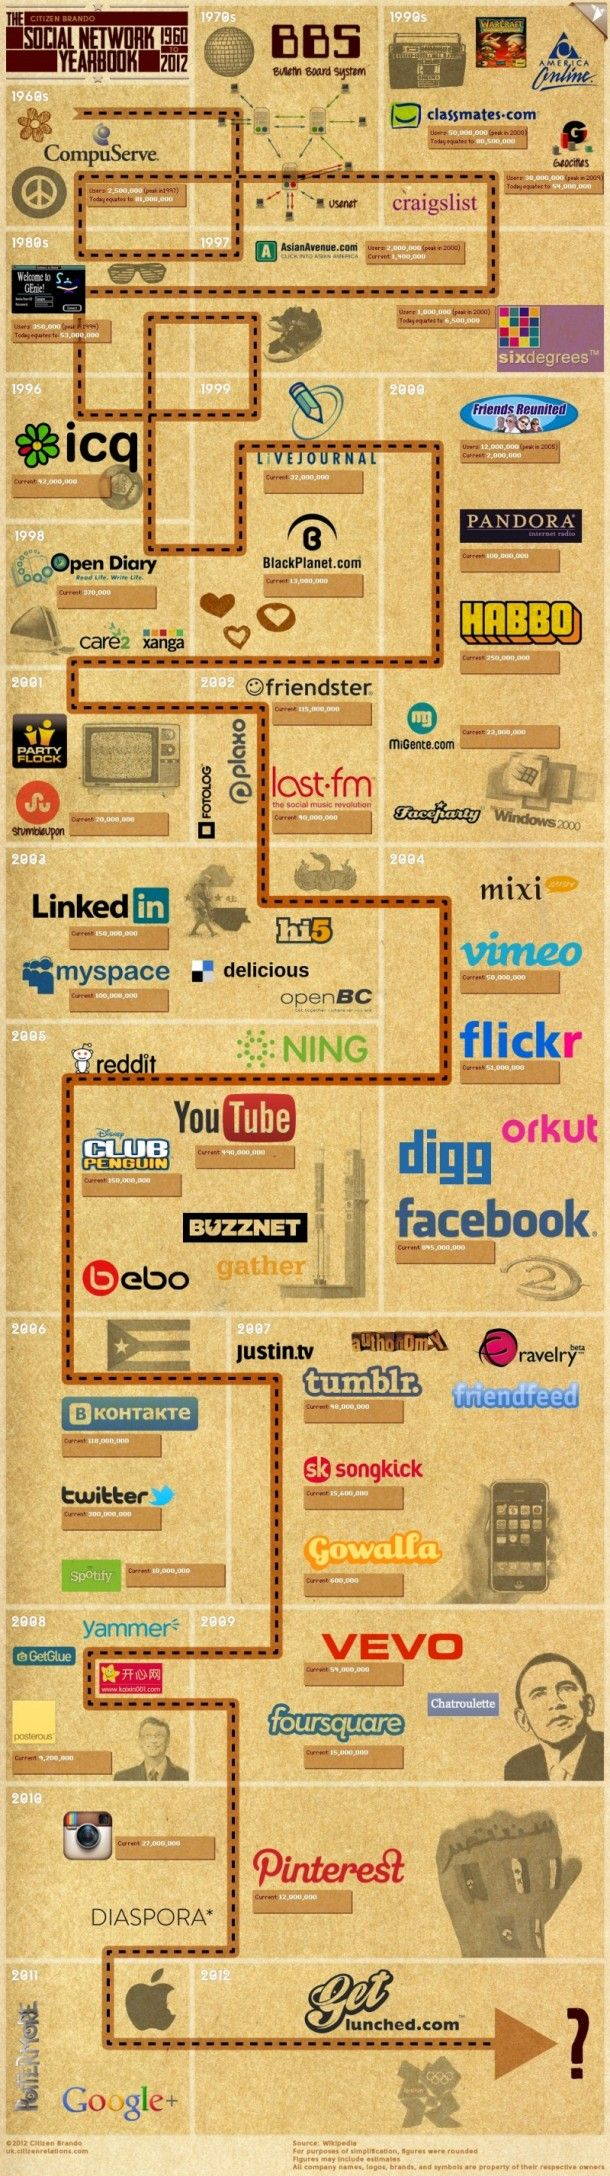 Infographic - The History of Social Media dates back to the 1960s.  Woah. Who new?